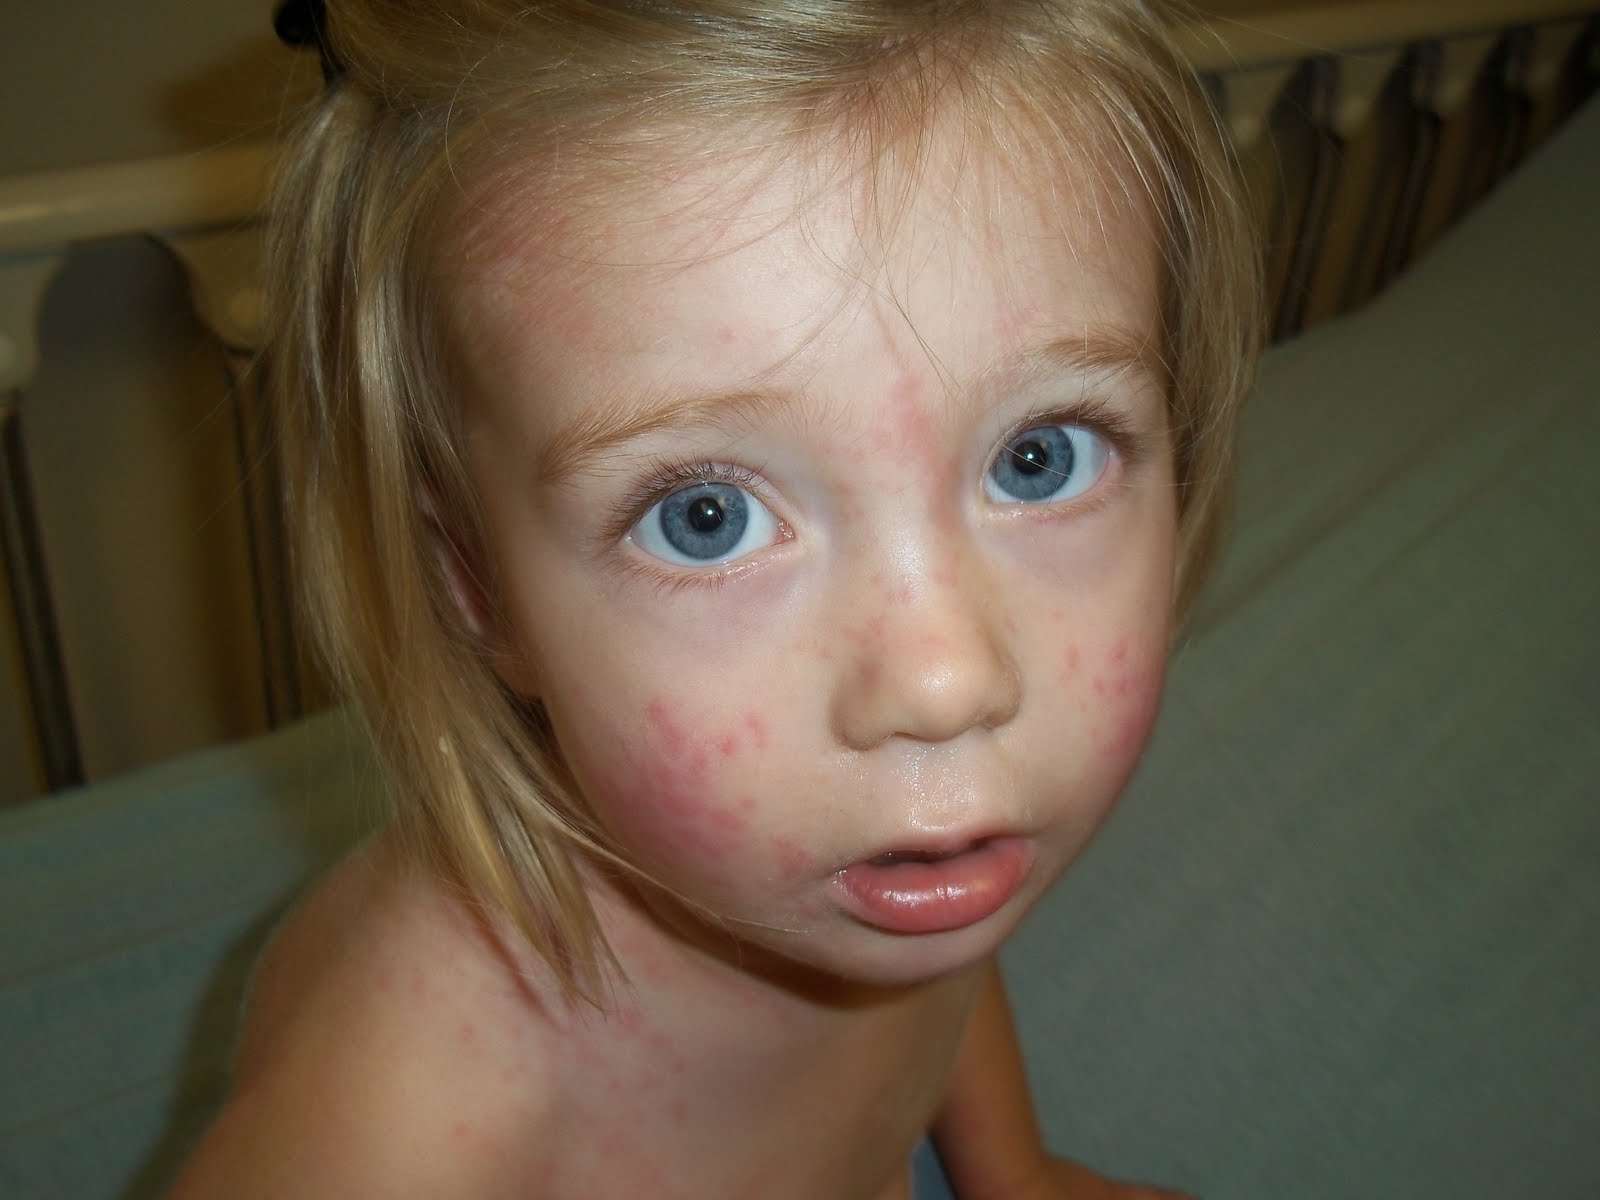 Infant, Toddler and Children, Rashes - Ask Dr. Sears